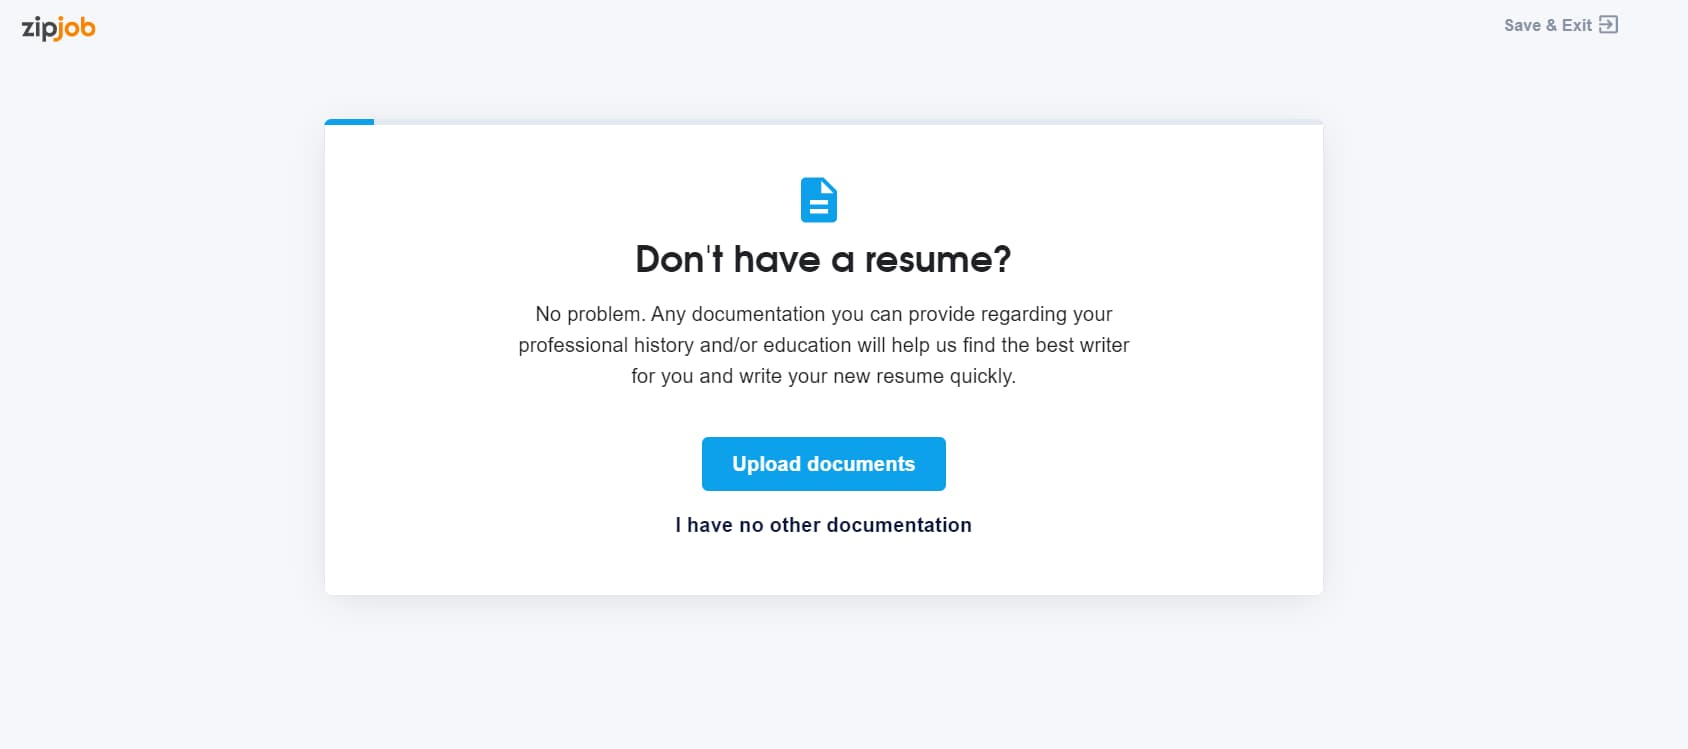 Zipjob don't have a resume